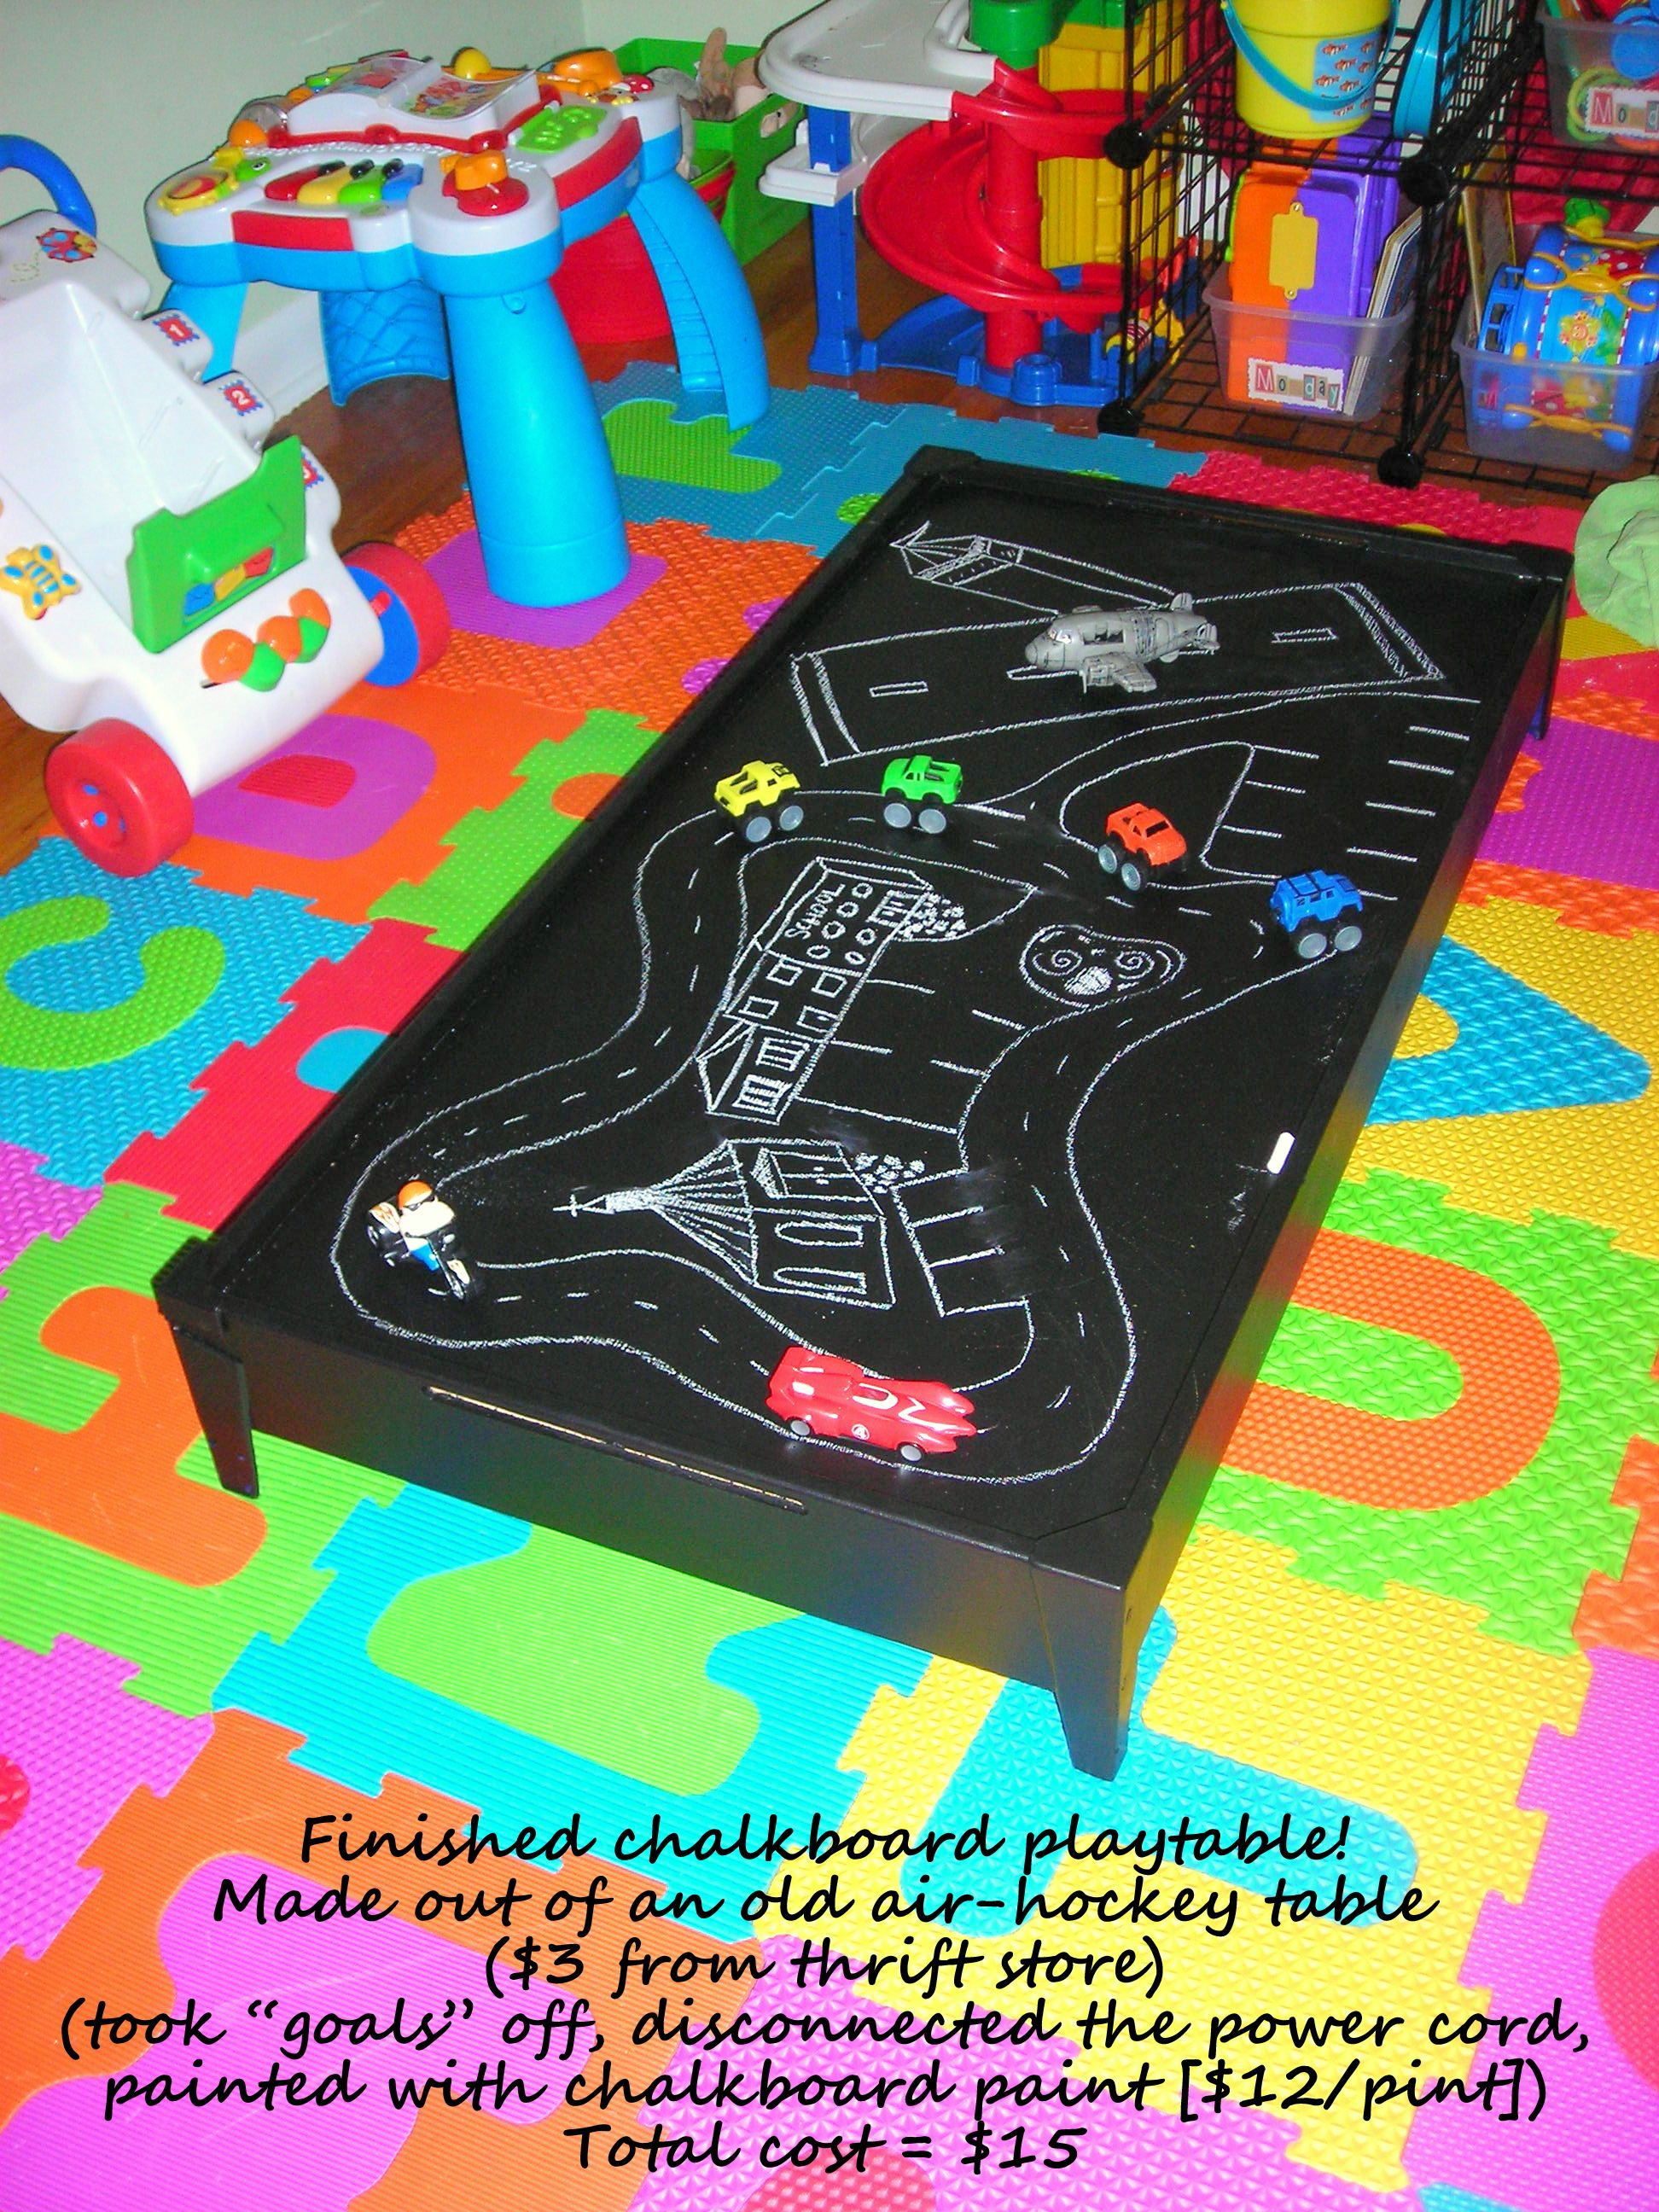 Ordinaire DIY Chalkboard Play Table; Made From An Air Hockey Table ($3 At Thrift